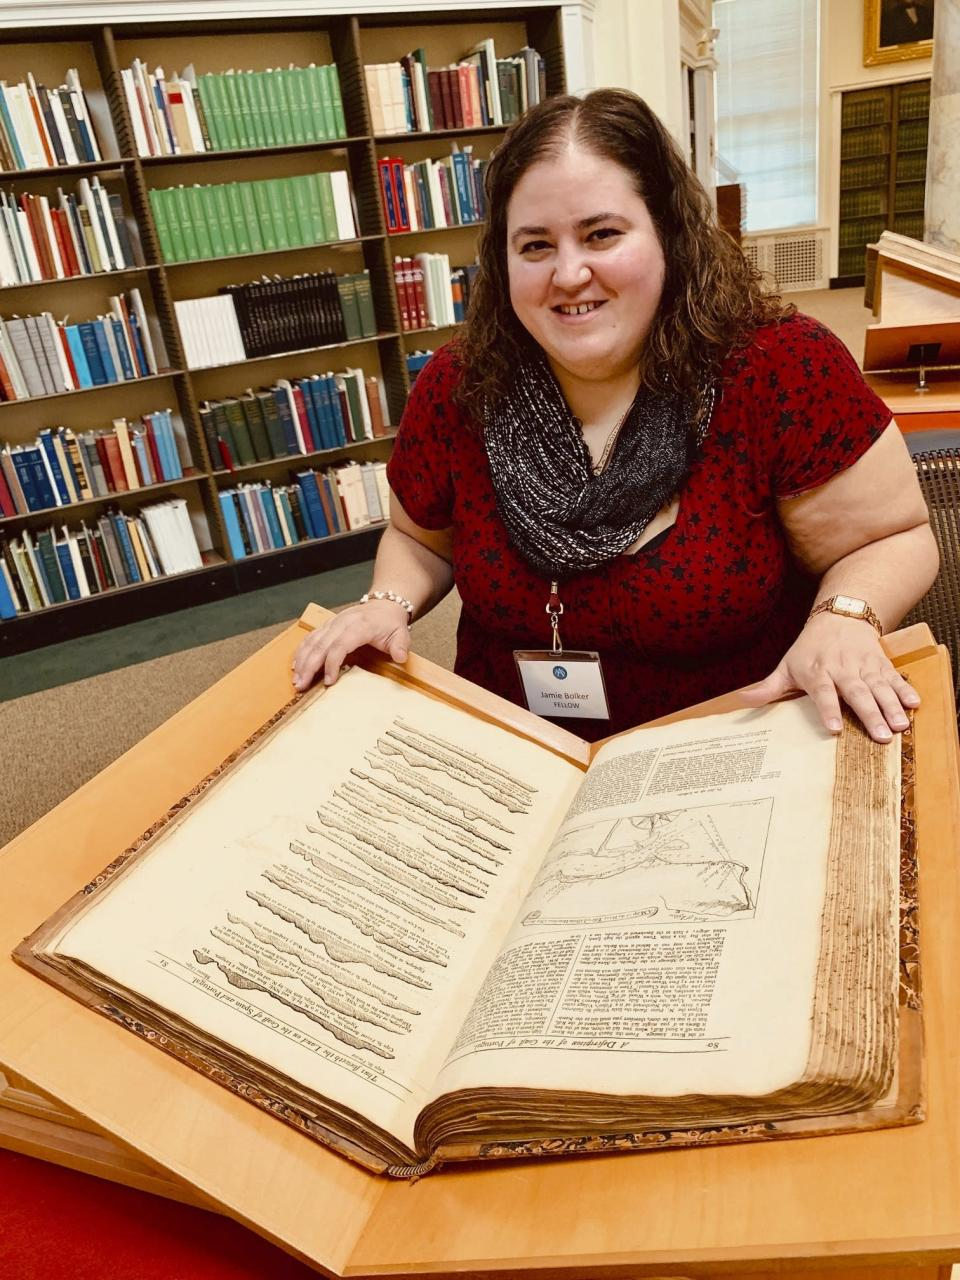 "This May 2019 photo provided by Ben Bascom shows Jamie Bolker while doing research at the American Antiquarian Society in Worcester, Mass. When Bolker started teaching composition at MacMurray College in January 2020, she felt like she'd won the lottery. In March, though, she delivered a grim Twitter announcement: ""Welp. MacMurray College is permanently closing ... They were already on the edge and coronavirus was the final nail."" (Ben Bascom via AP)"